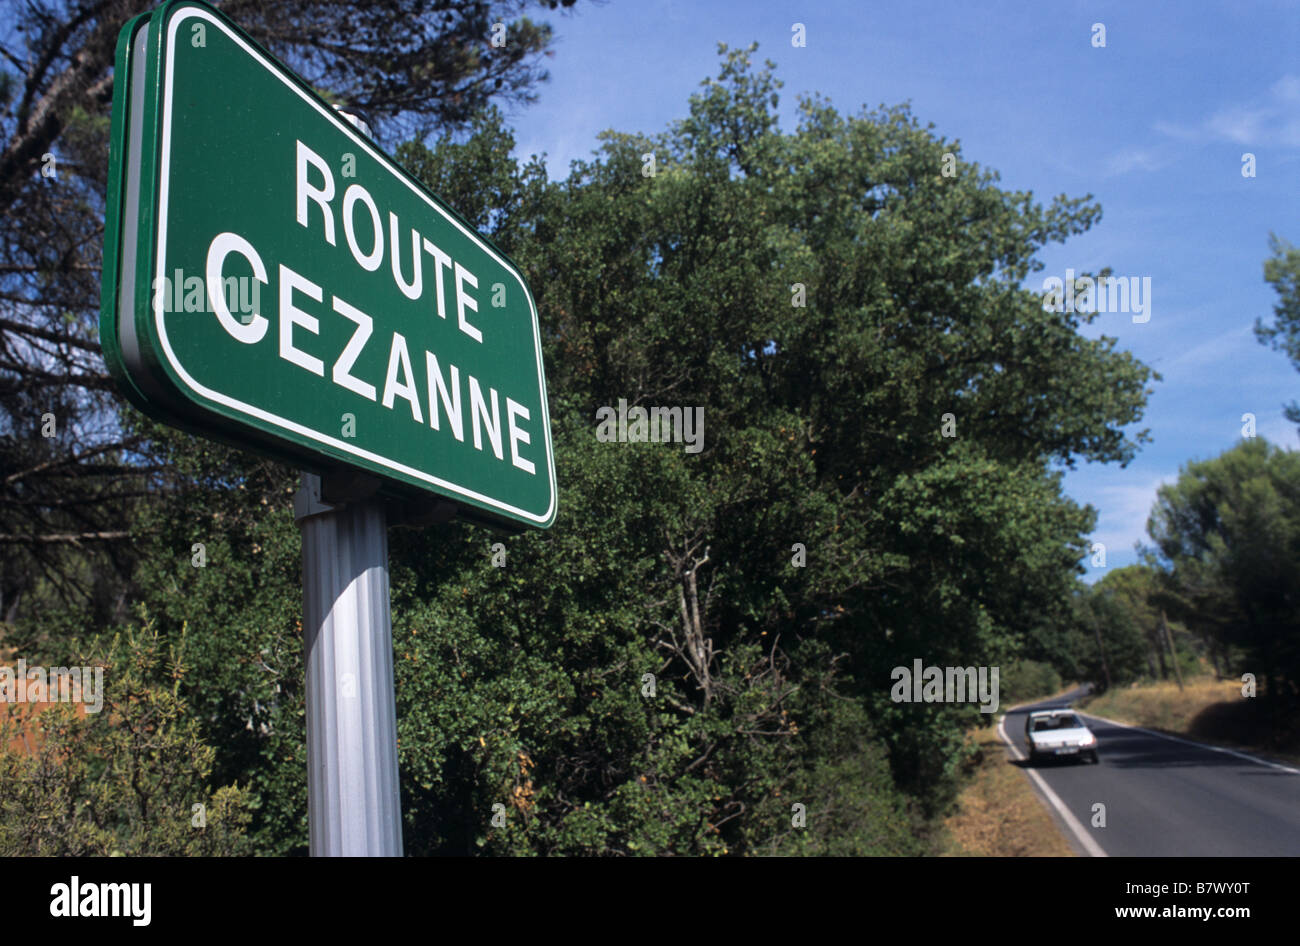 route cezanne road sign road from le tholonet to mont